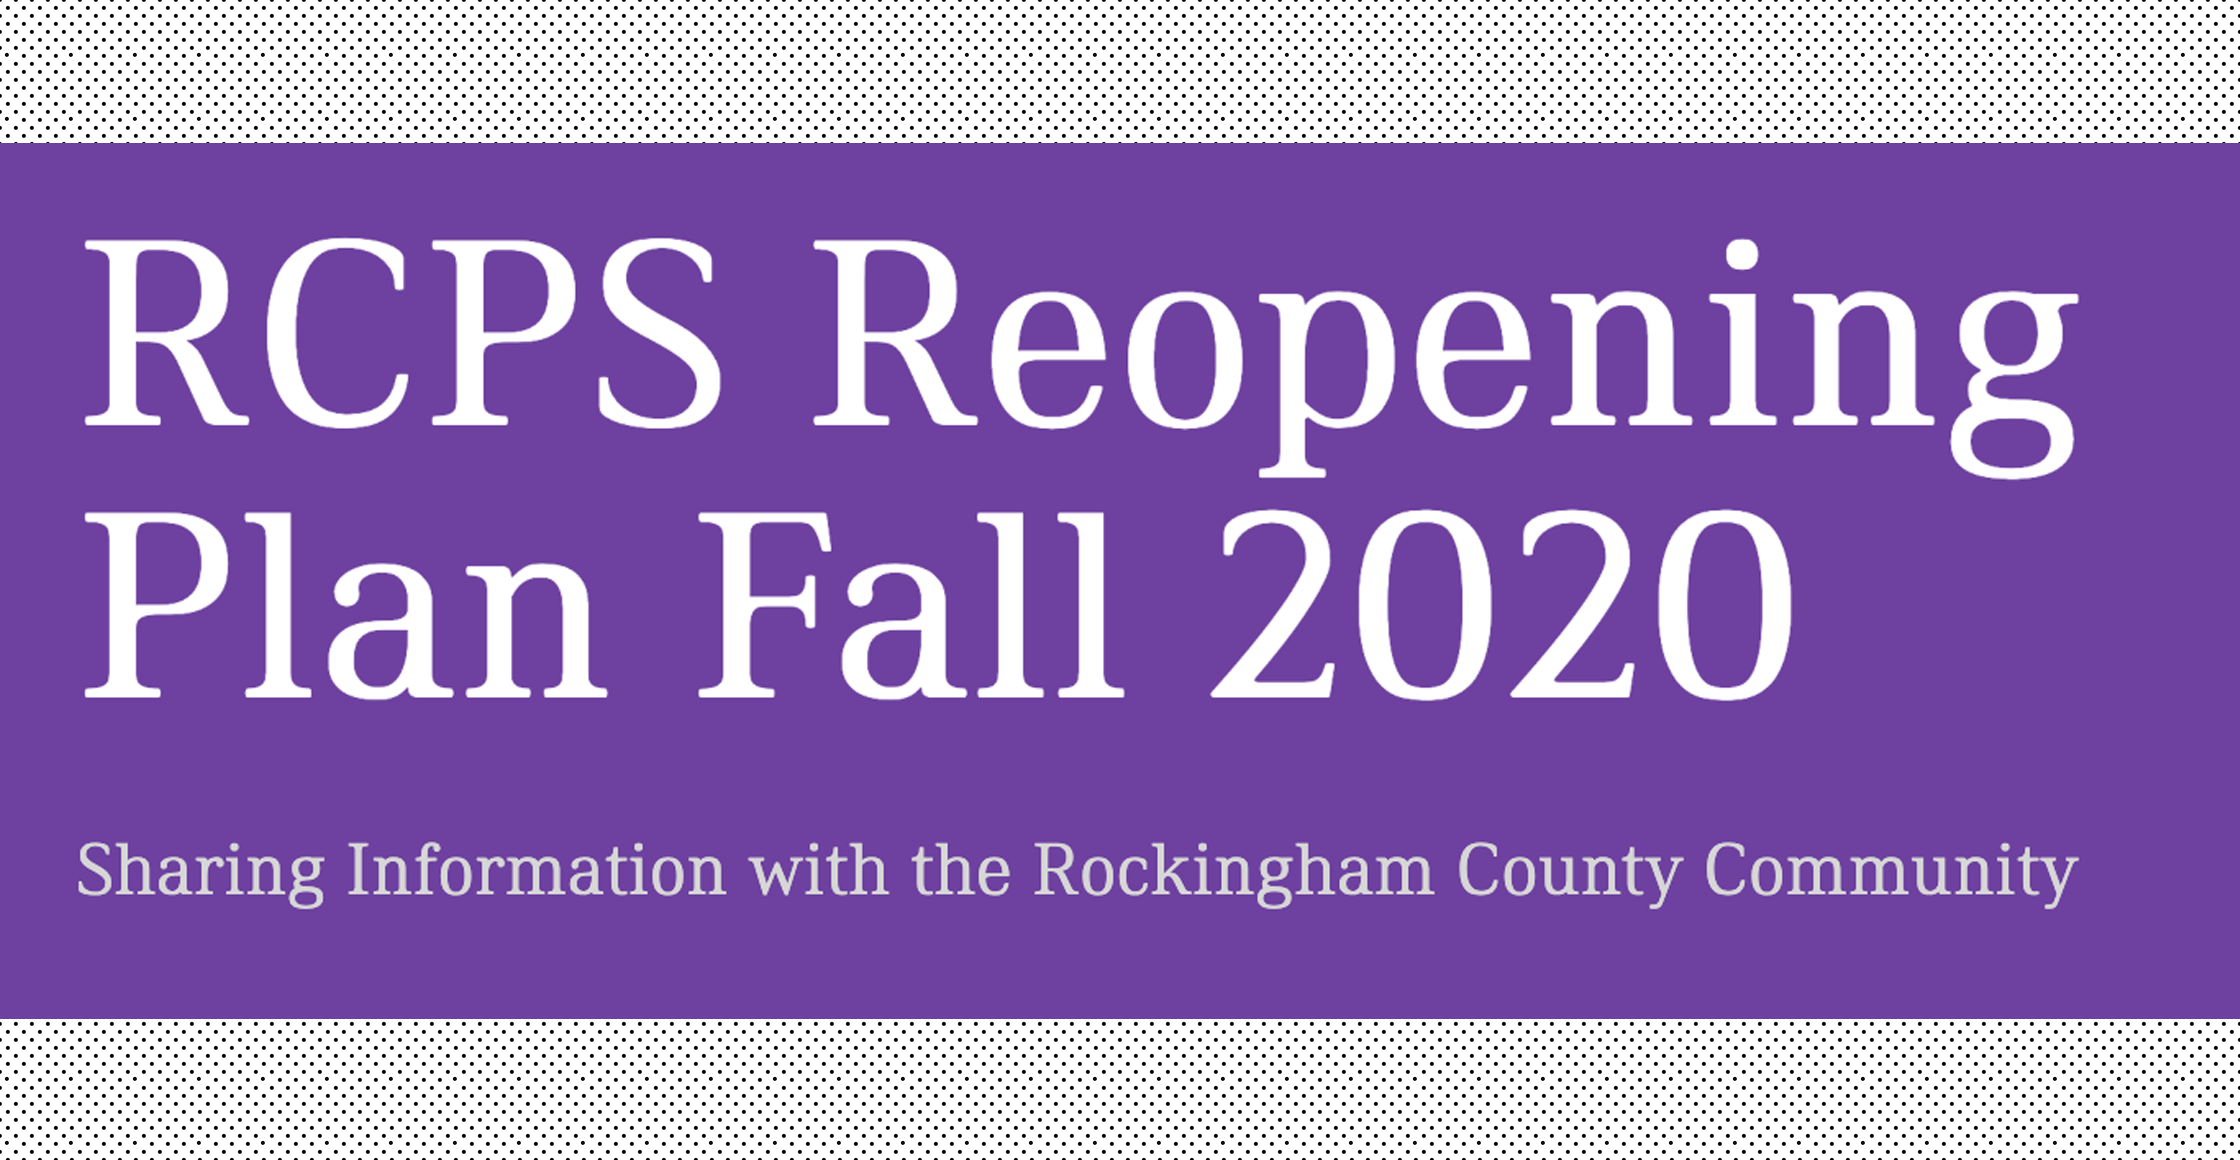 RCPS Reopening Plan FALL 2020